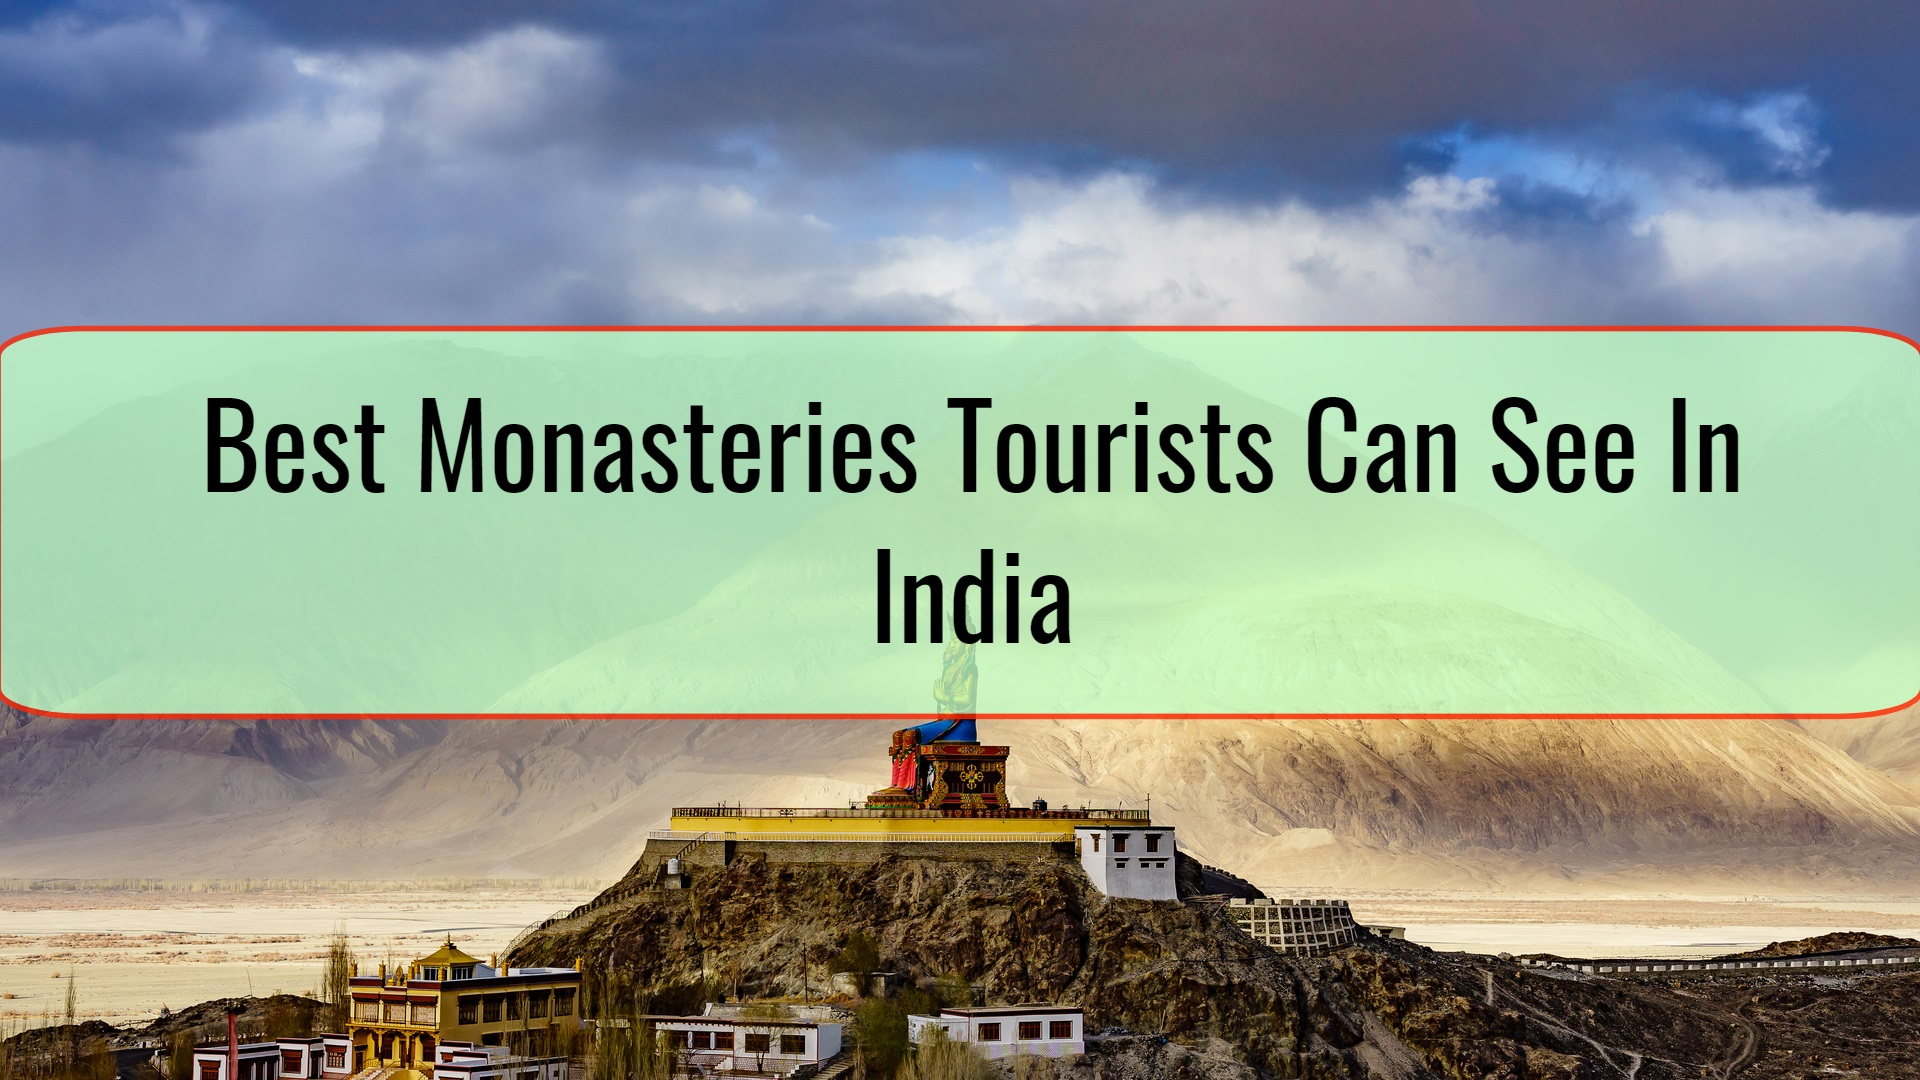 Best Monasteries Tourists Can See In India